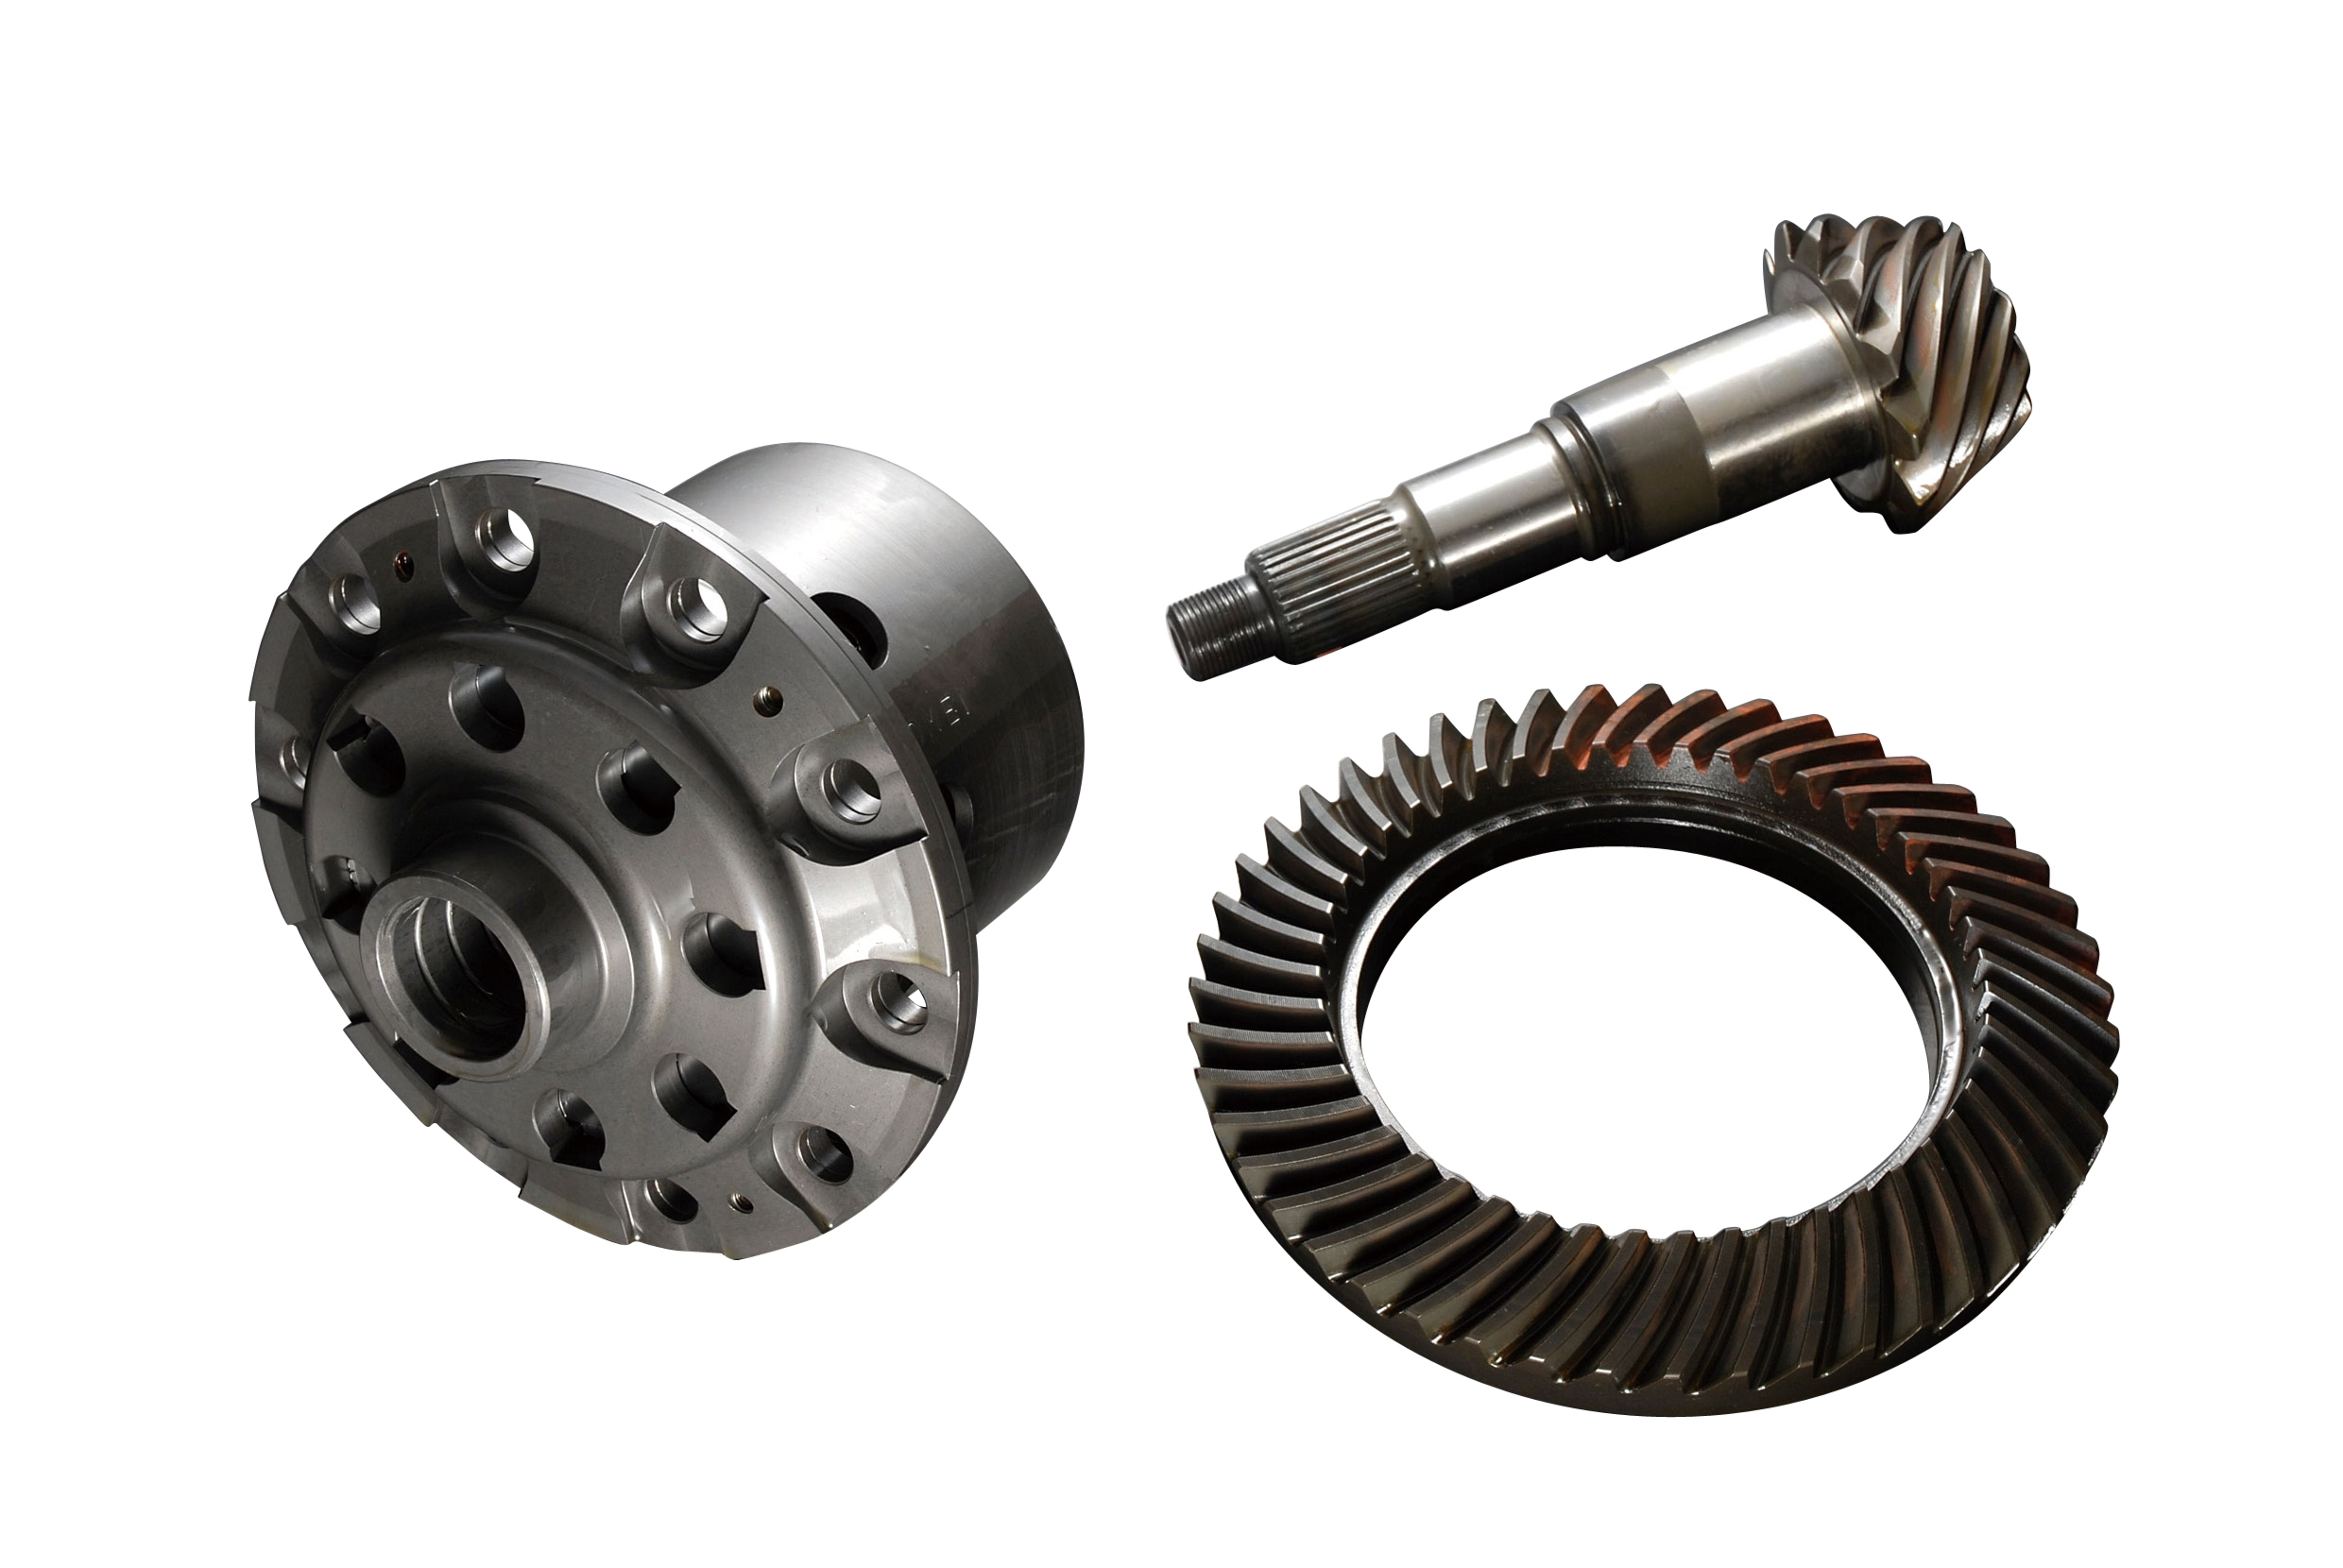 Tomei Technical Trax 1.5-Way LSD MT Type HX1 w/ Open Diff Base Models - Nissan V35, Z33, Z34